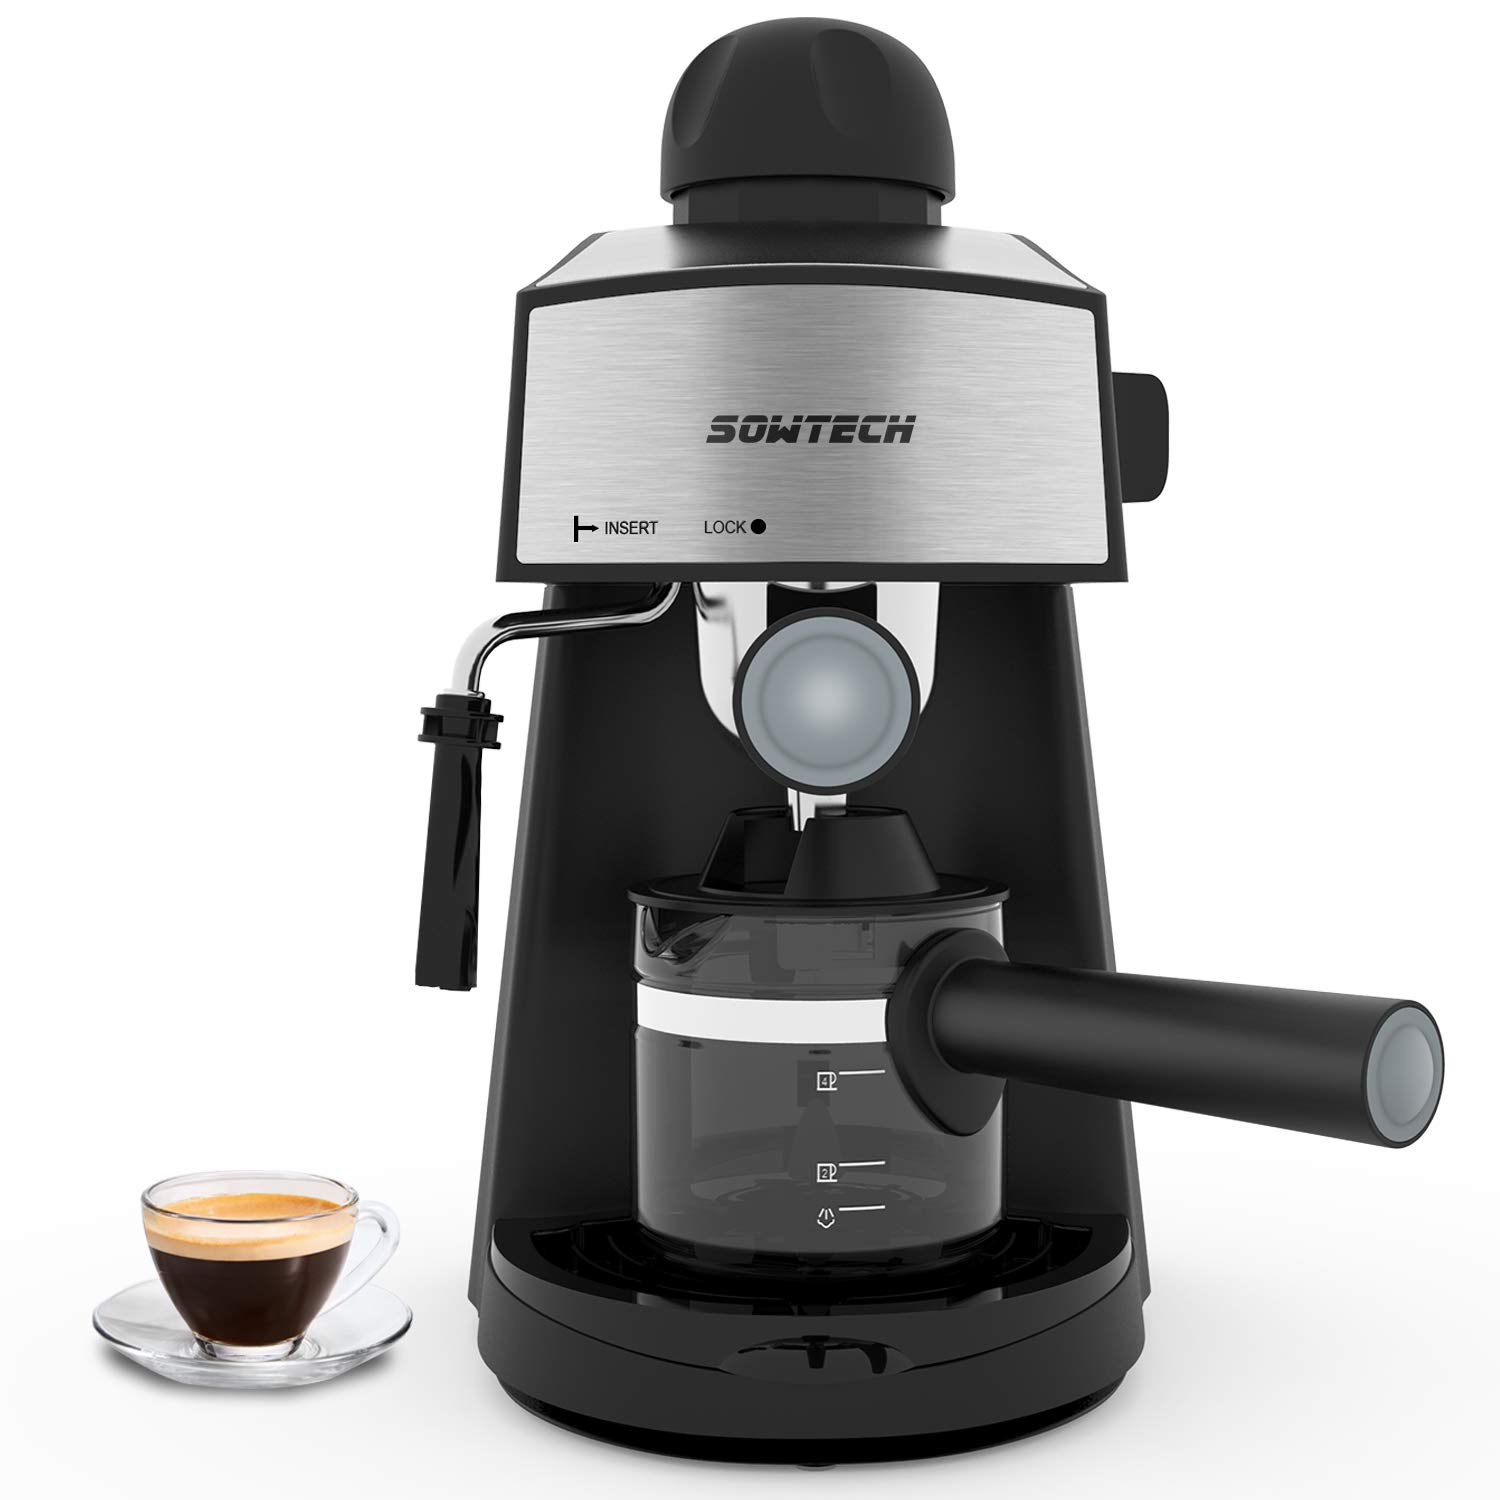 SOWTECH Espresso Machine Review